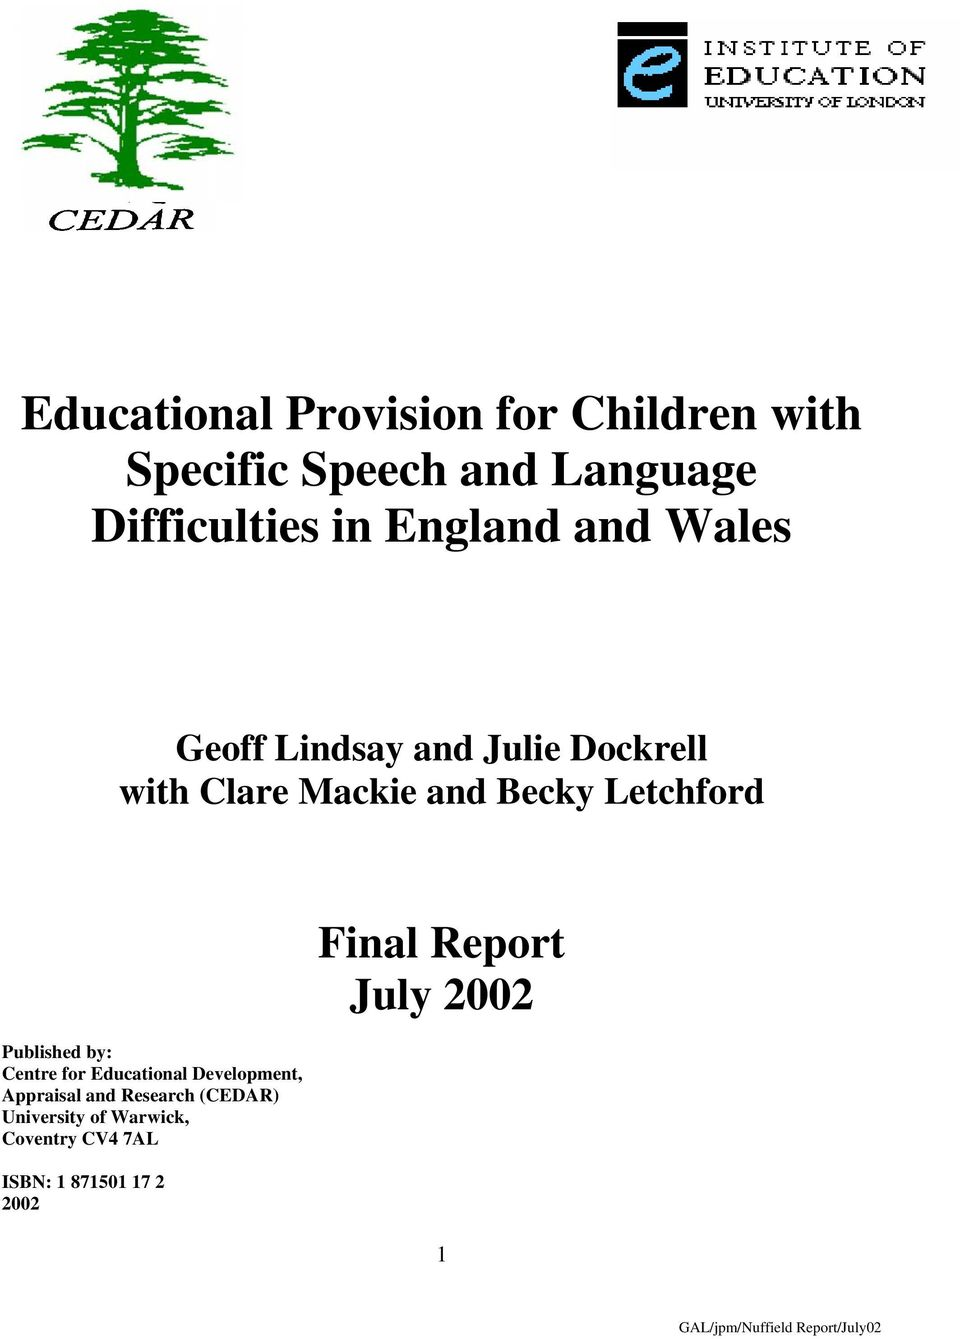 Letchford Published by: Centre for Educational Development, Appraisal and Research